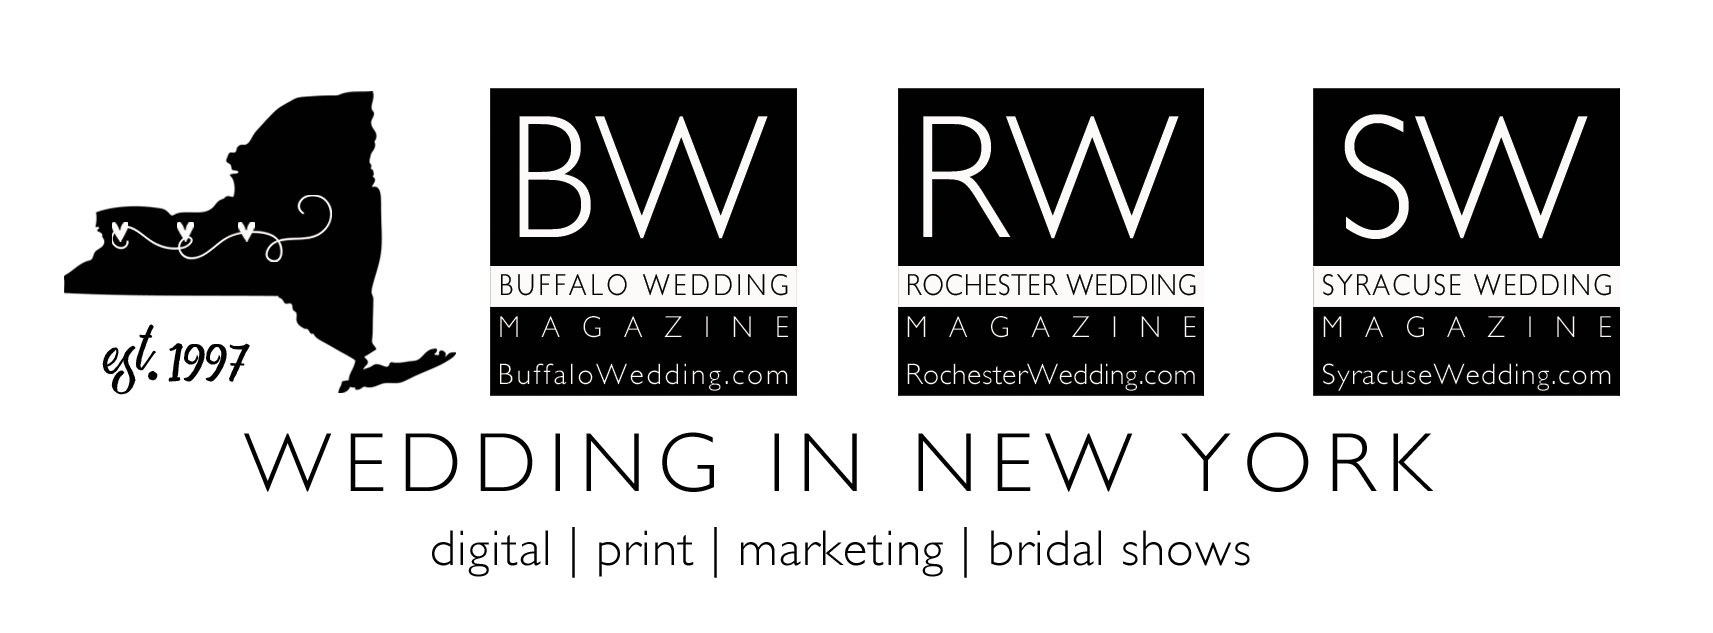 Wedding In New York Logos